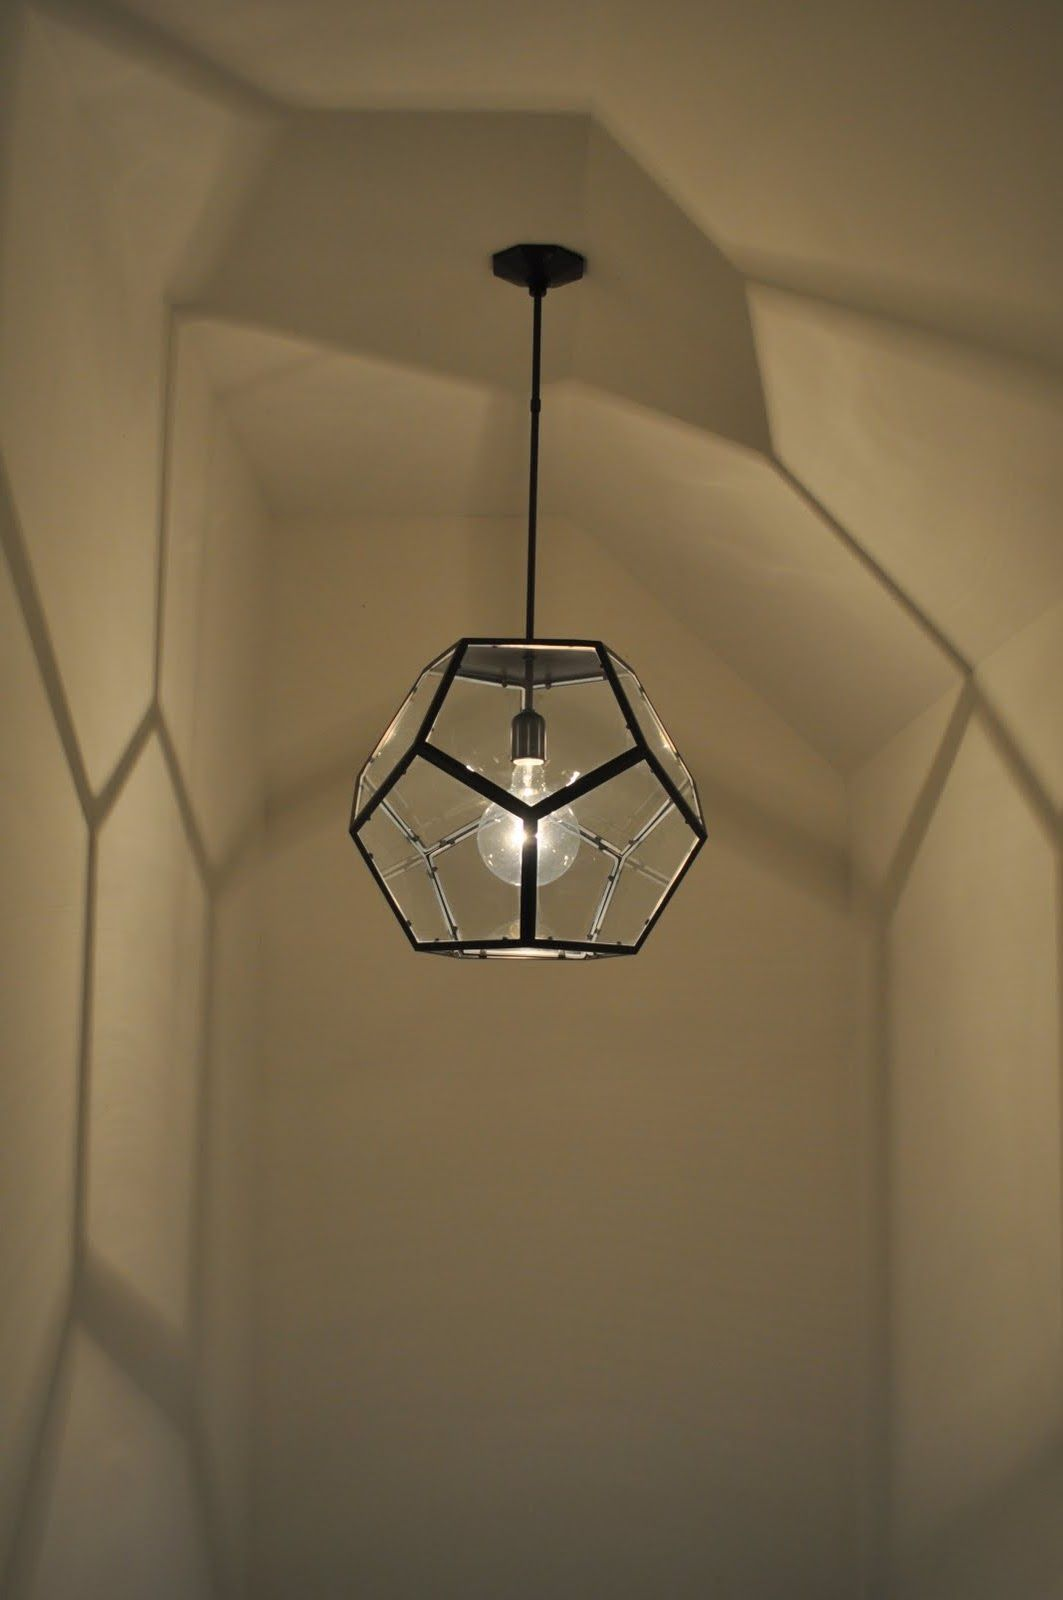 stairwell lighting. stairwell light fixture lighting